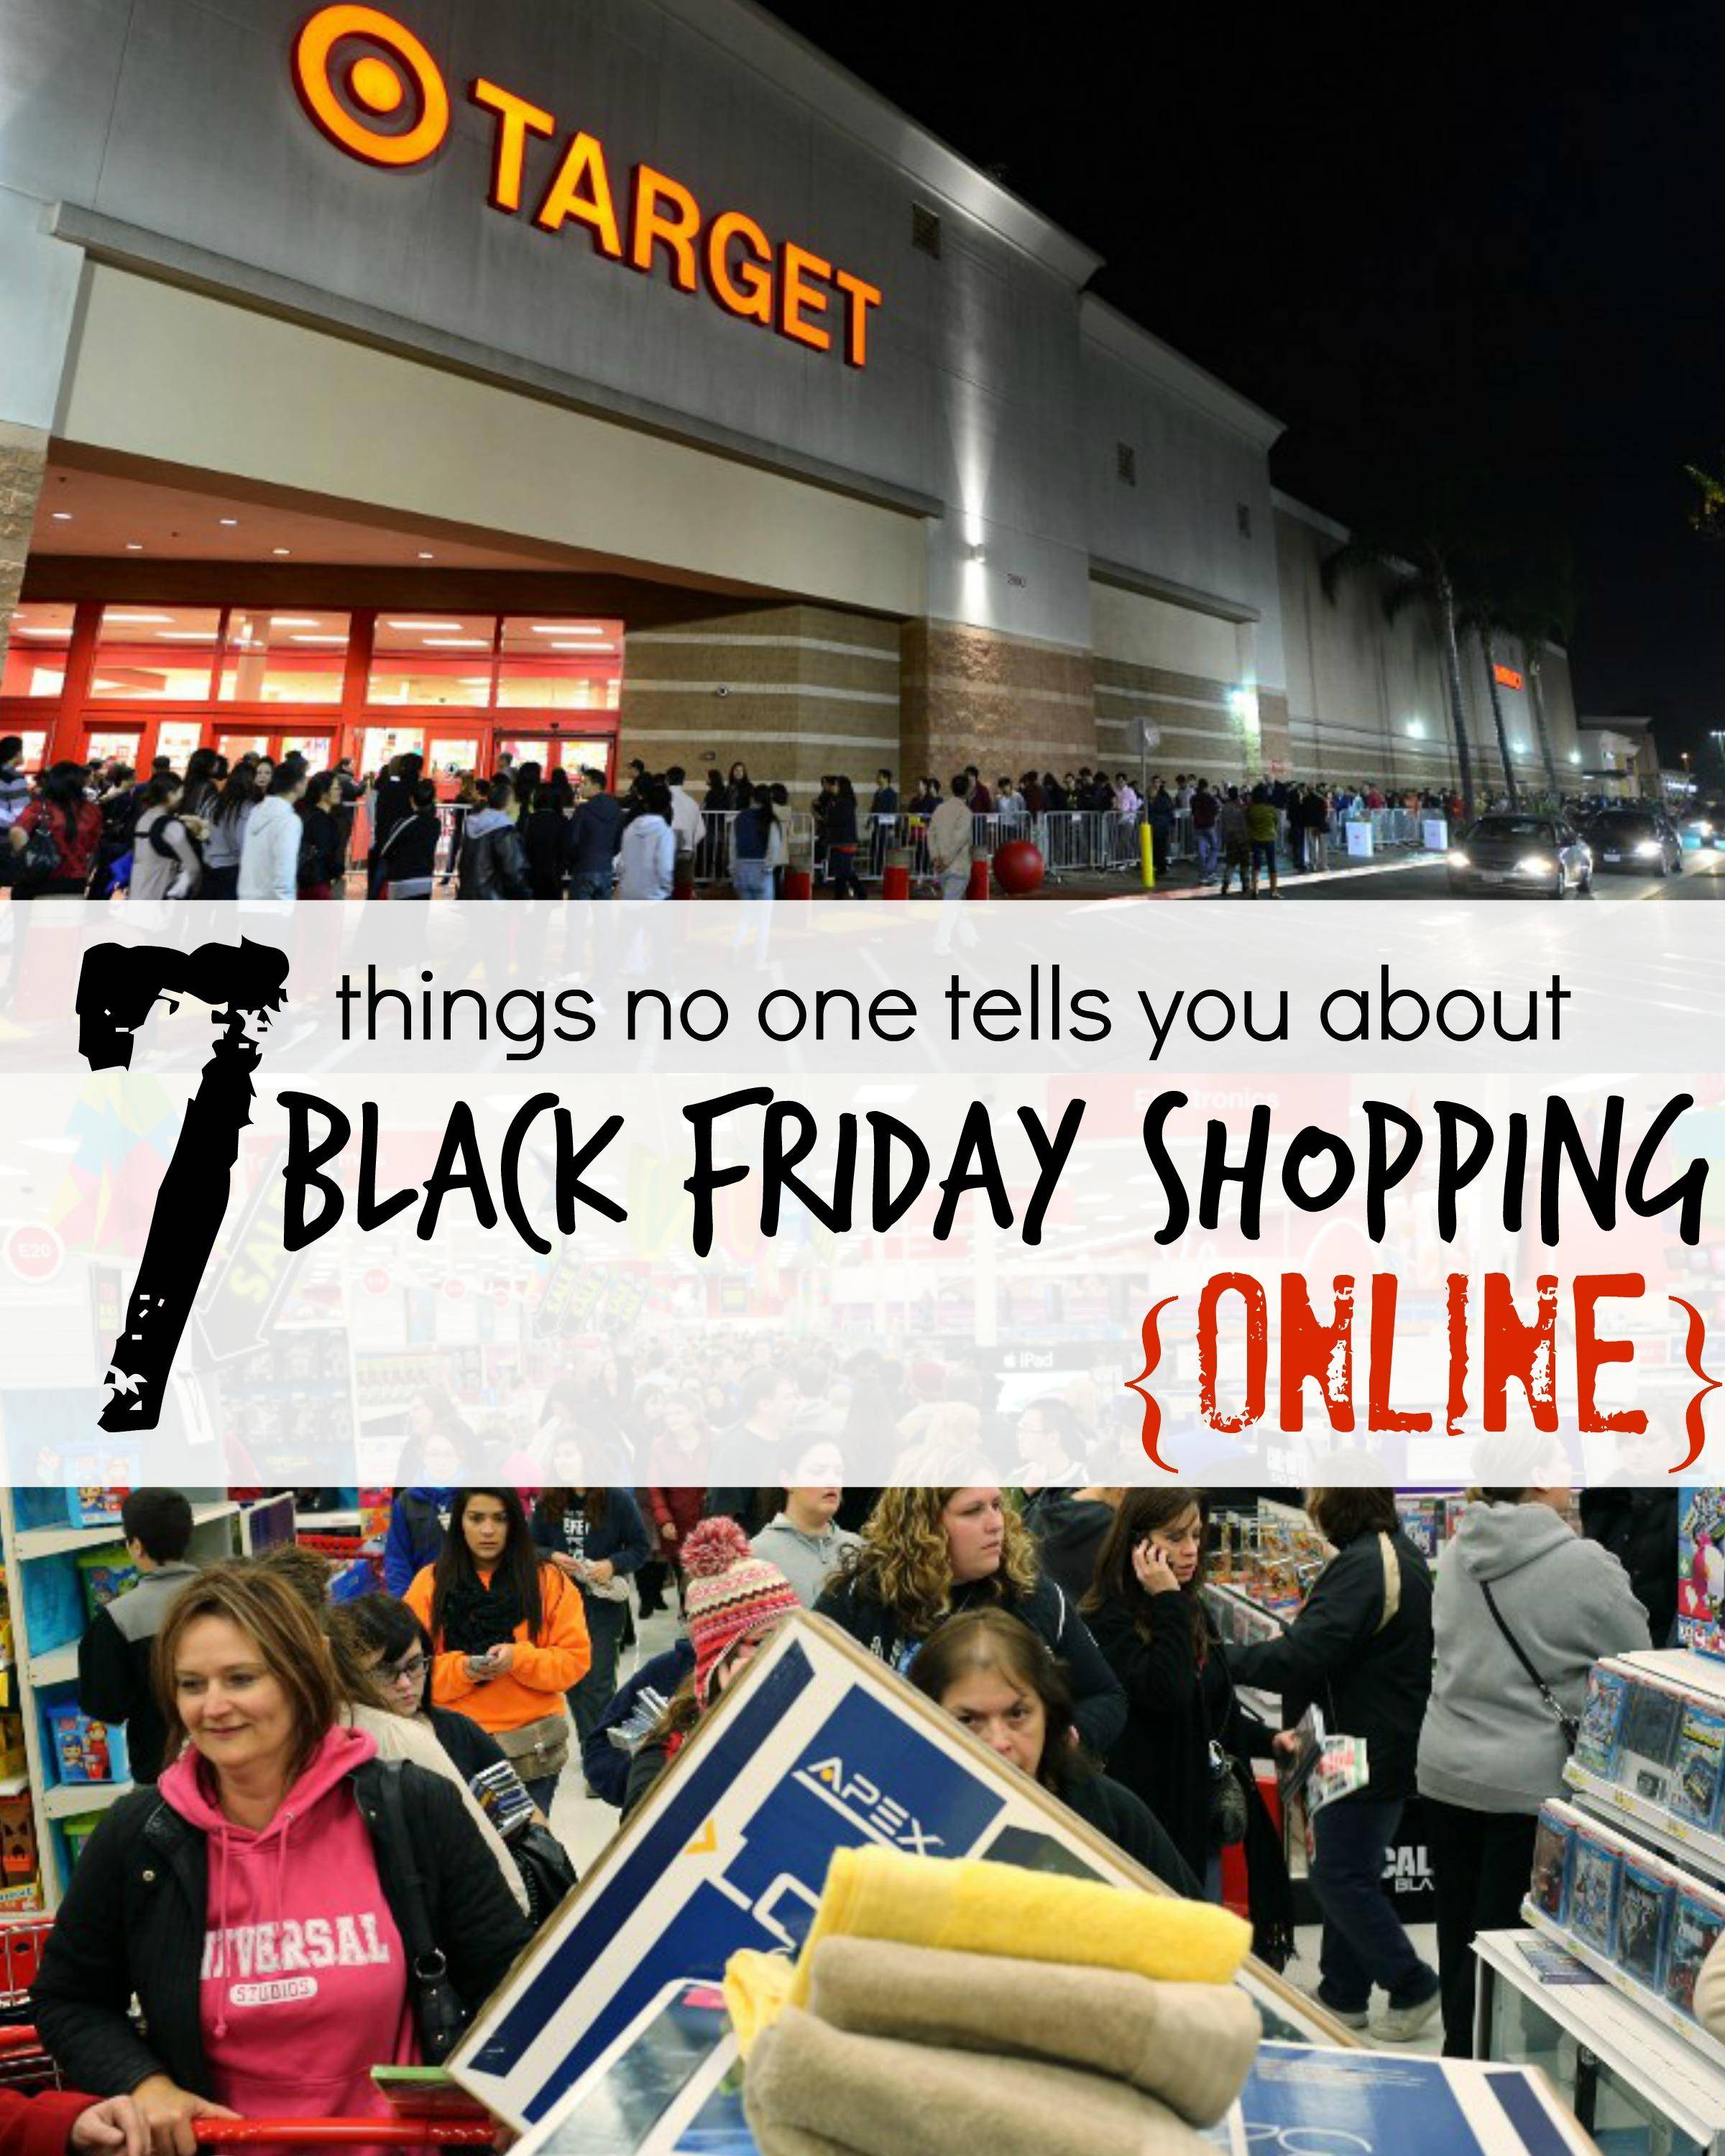 When it comes to Black Friday Shopping Online there are some secrets that most stores won't tell you about Black Friday shopping online. I thought I would share a few of my favorite tricks for getting awesome deals online during Black Friday Week